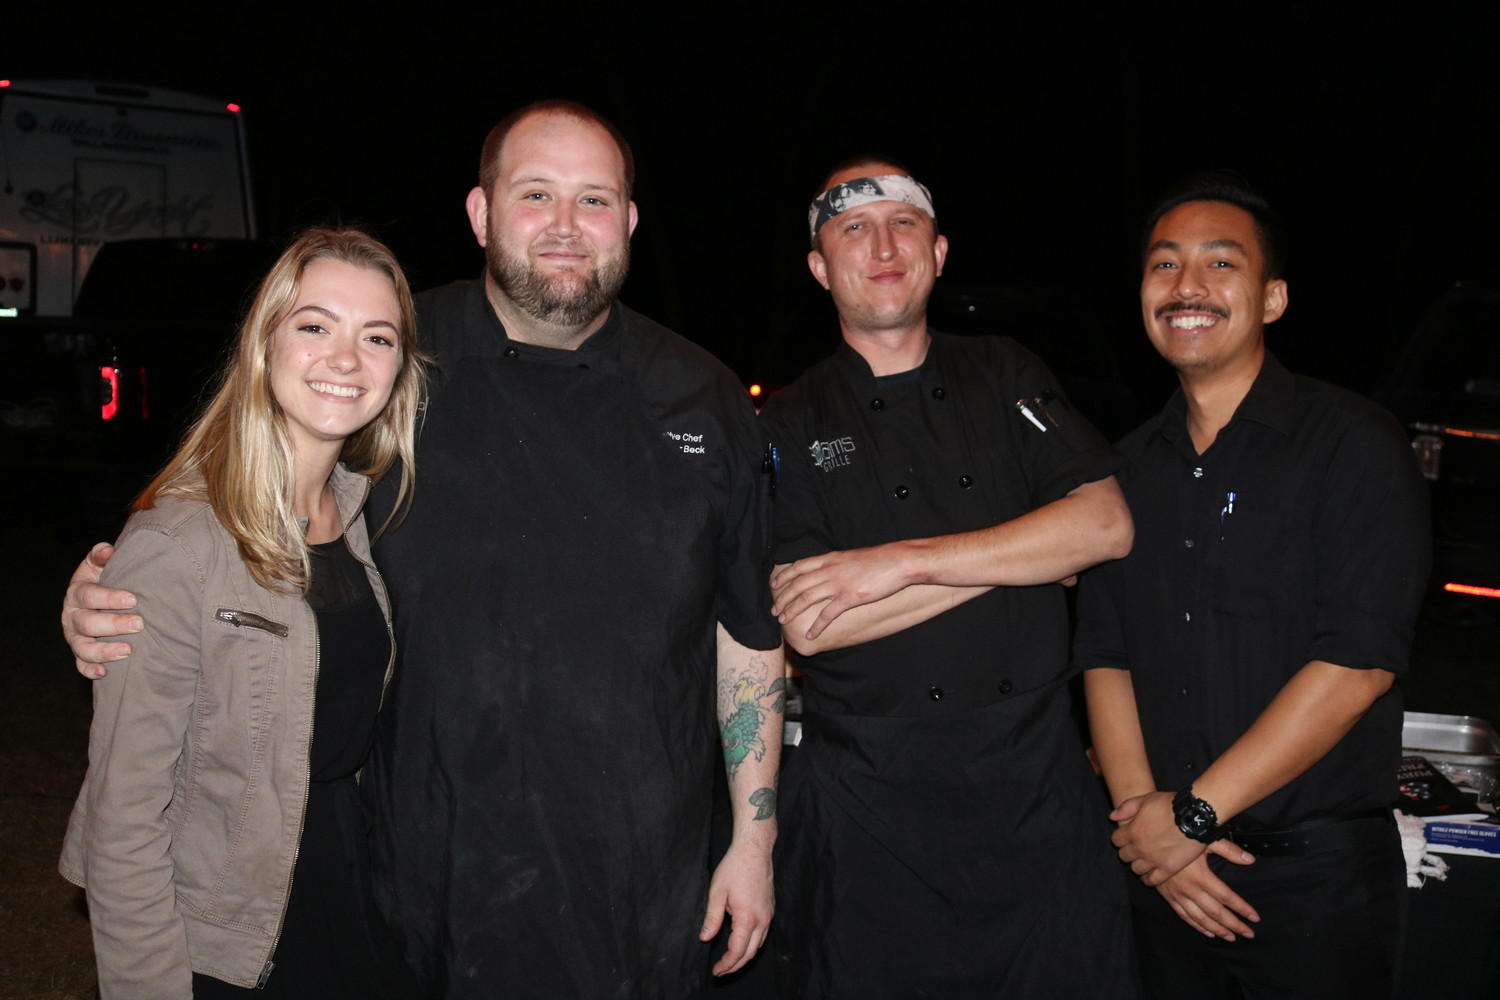 The 3 Palms Grille culinary team at the concert